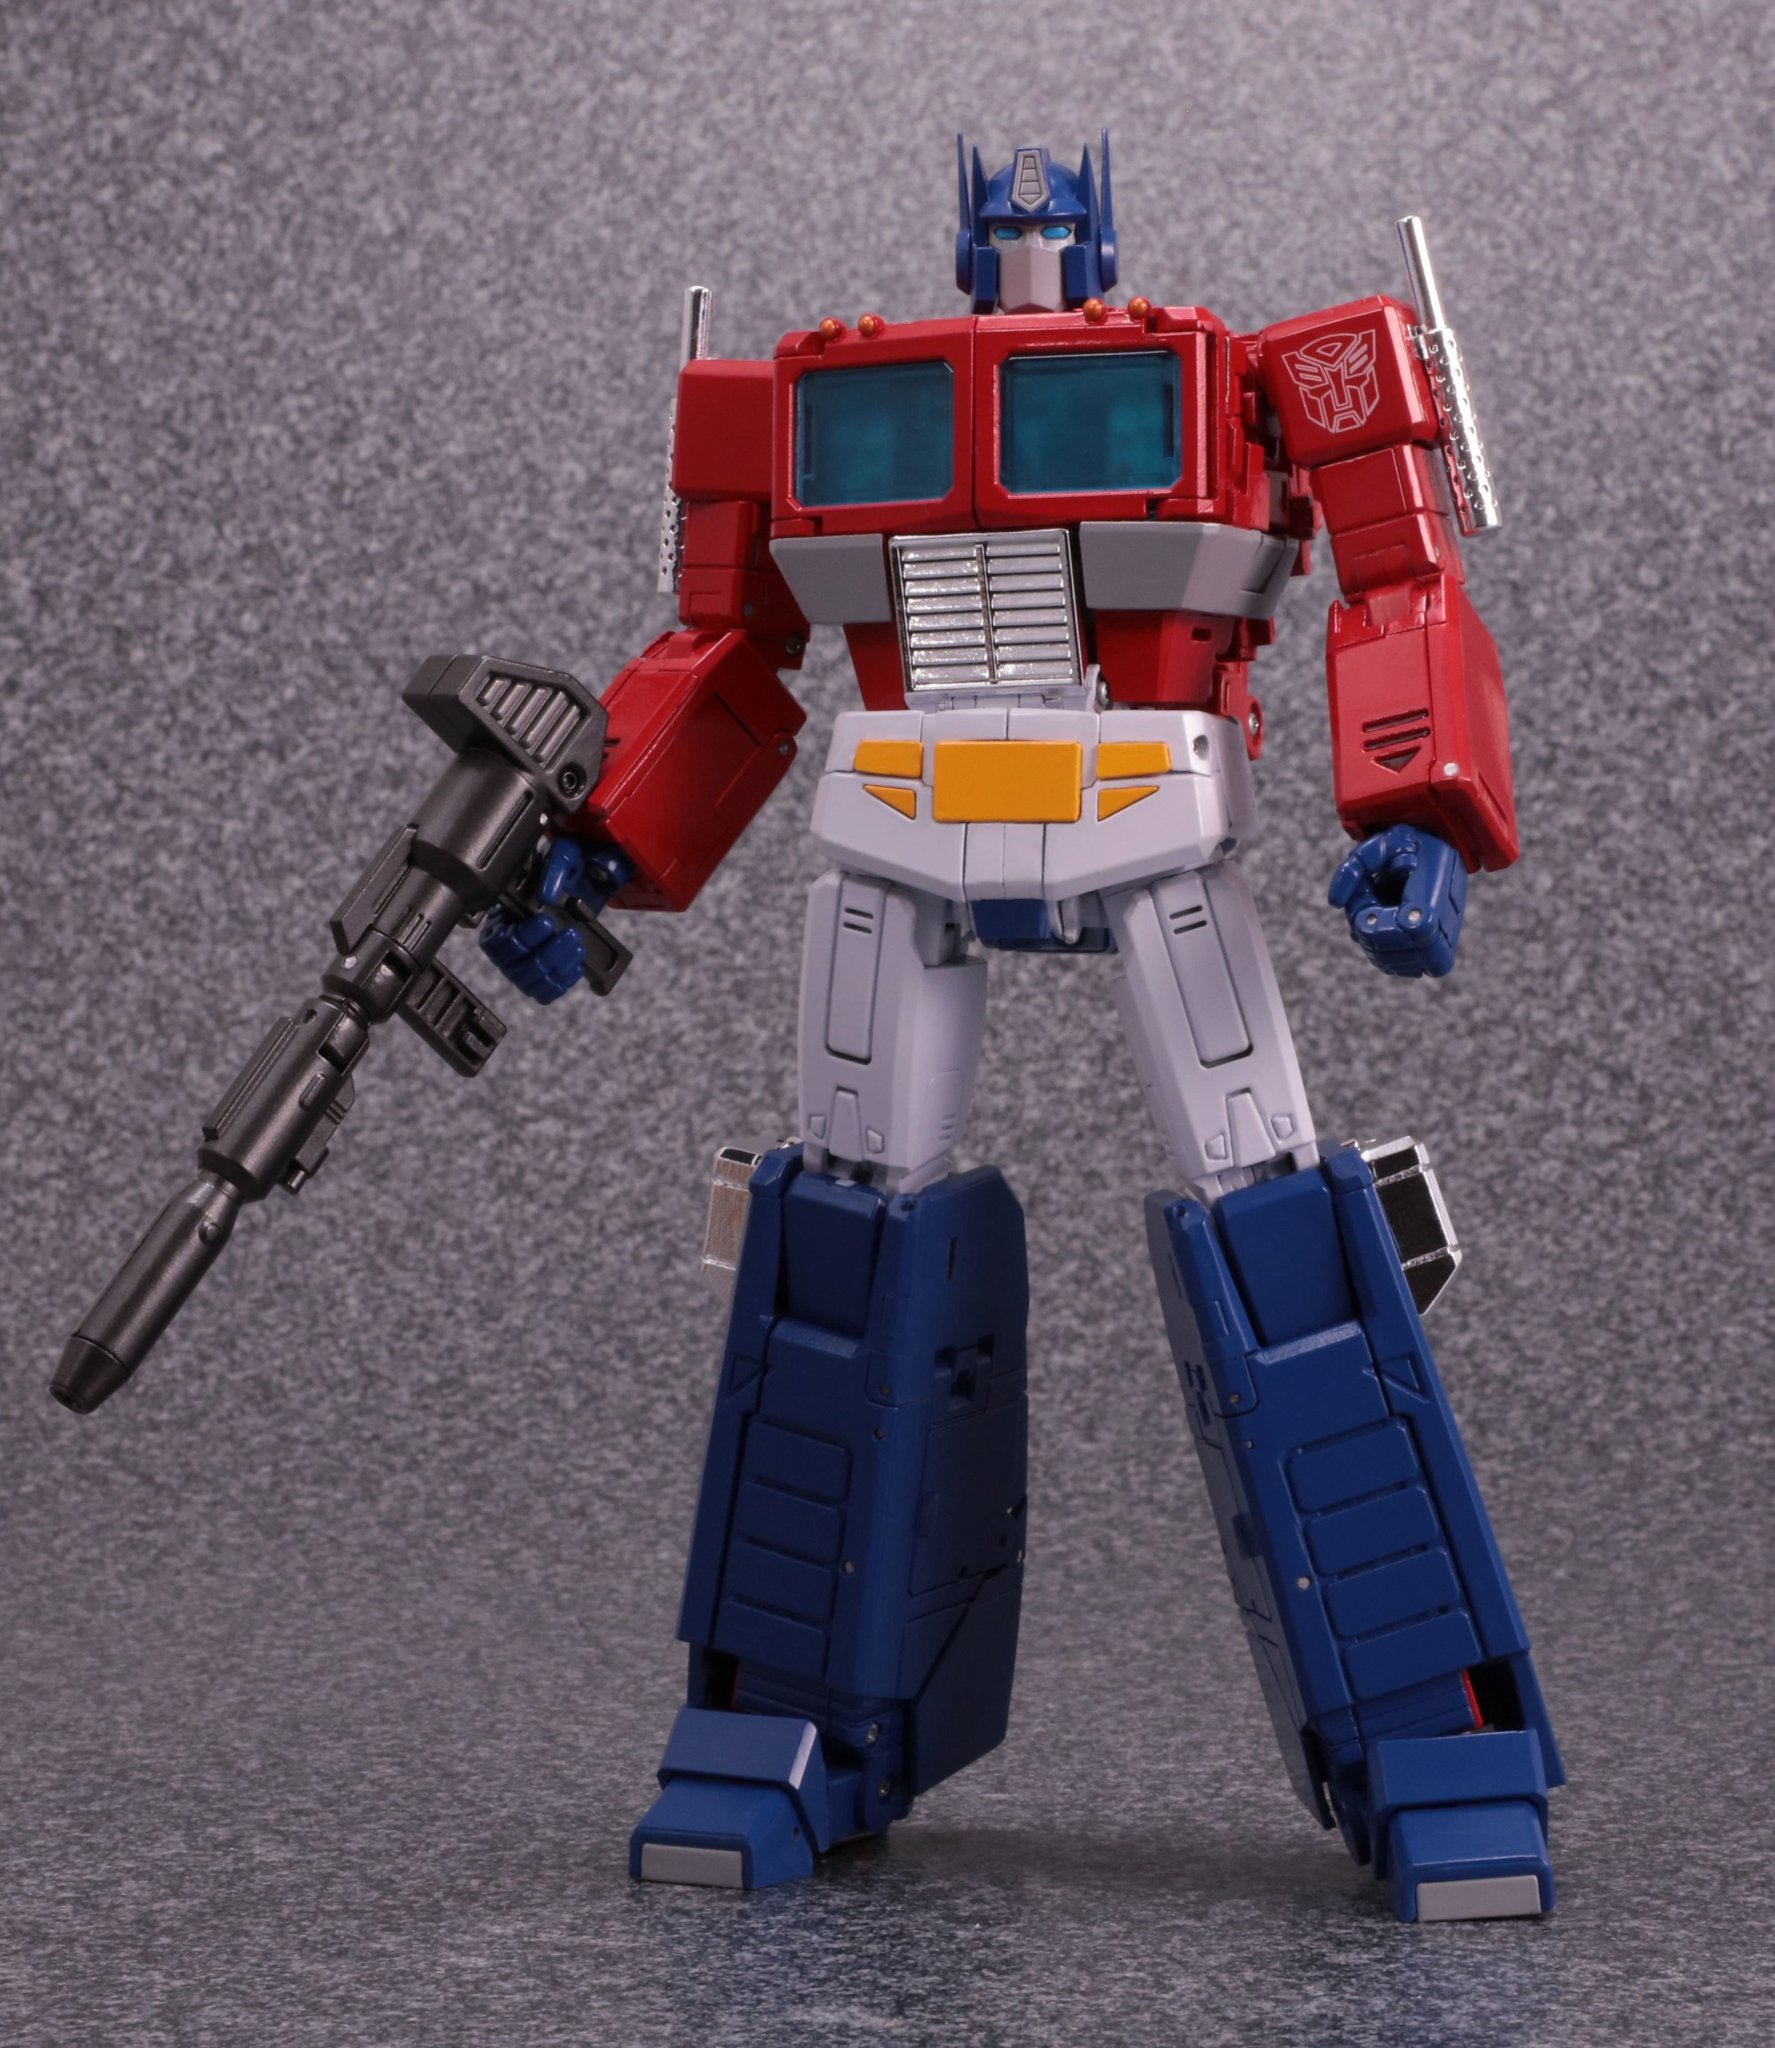 Hasbro-Takara-Transformers-Masterpiece-MP-44-Optimus-Prime-Version-3-Promo-20.jpg